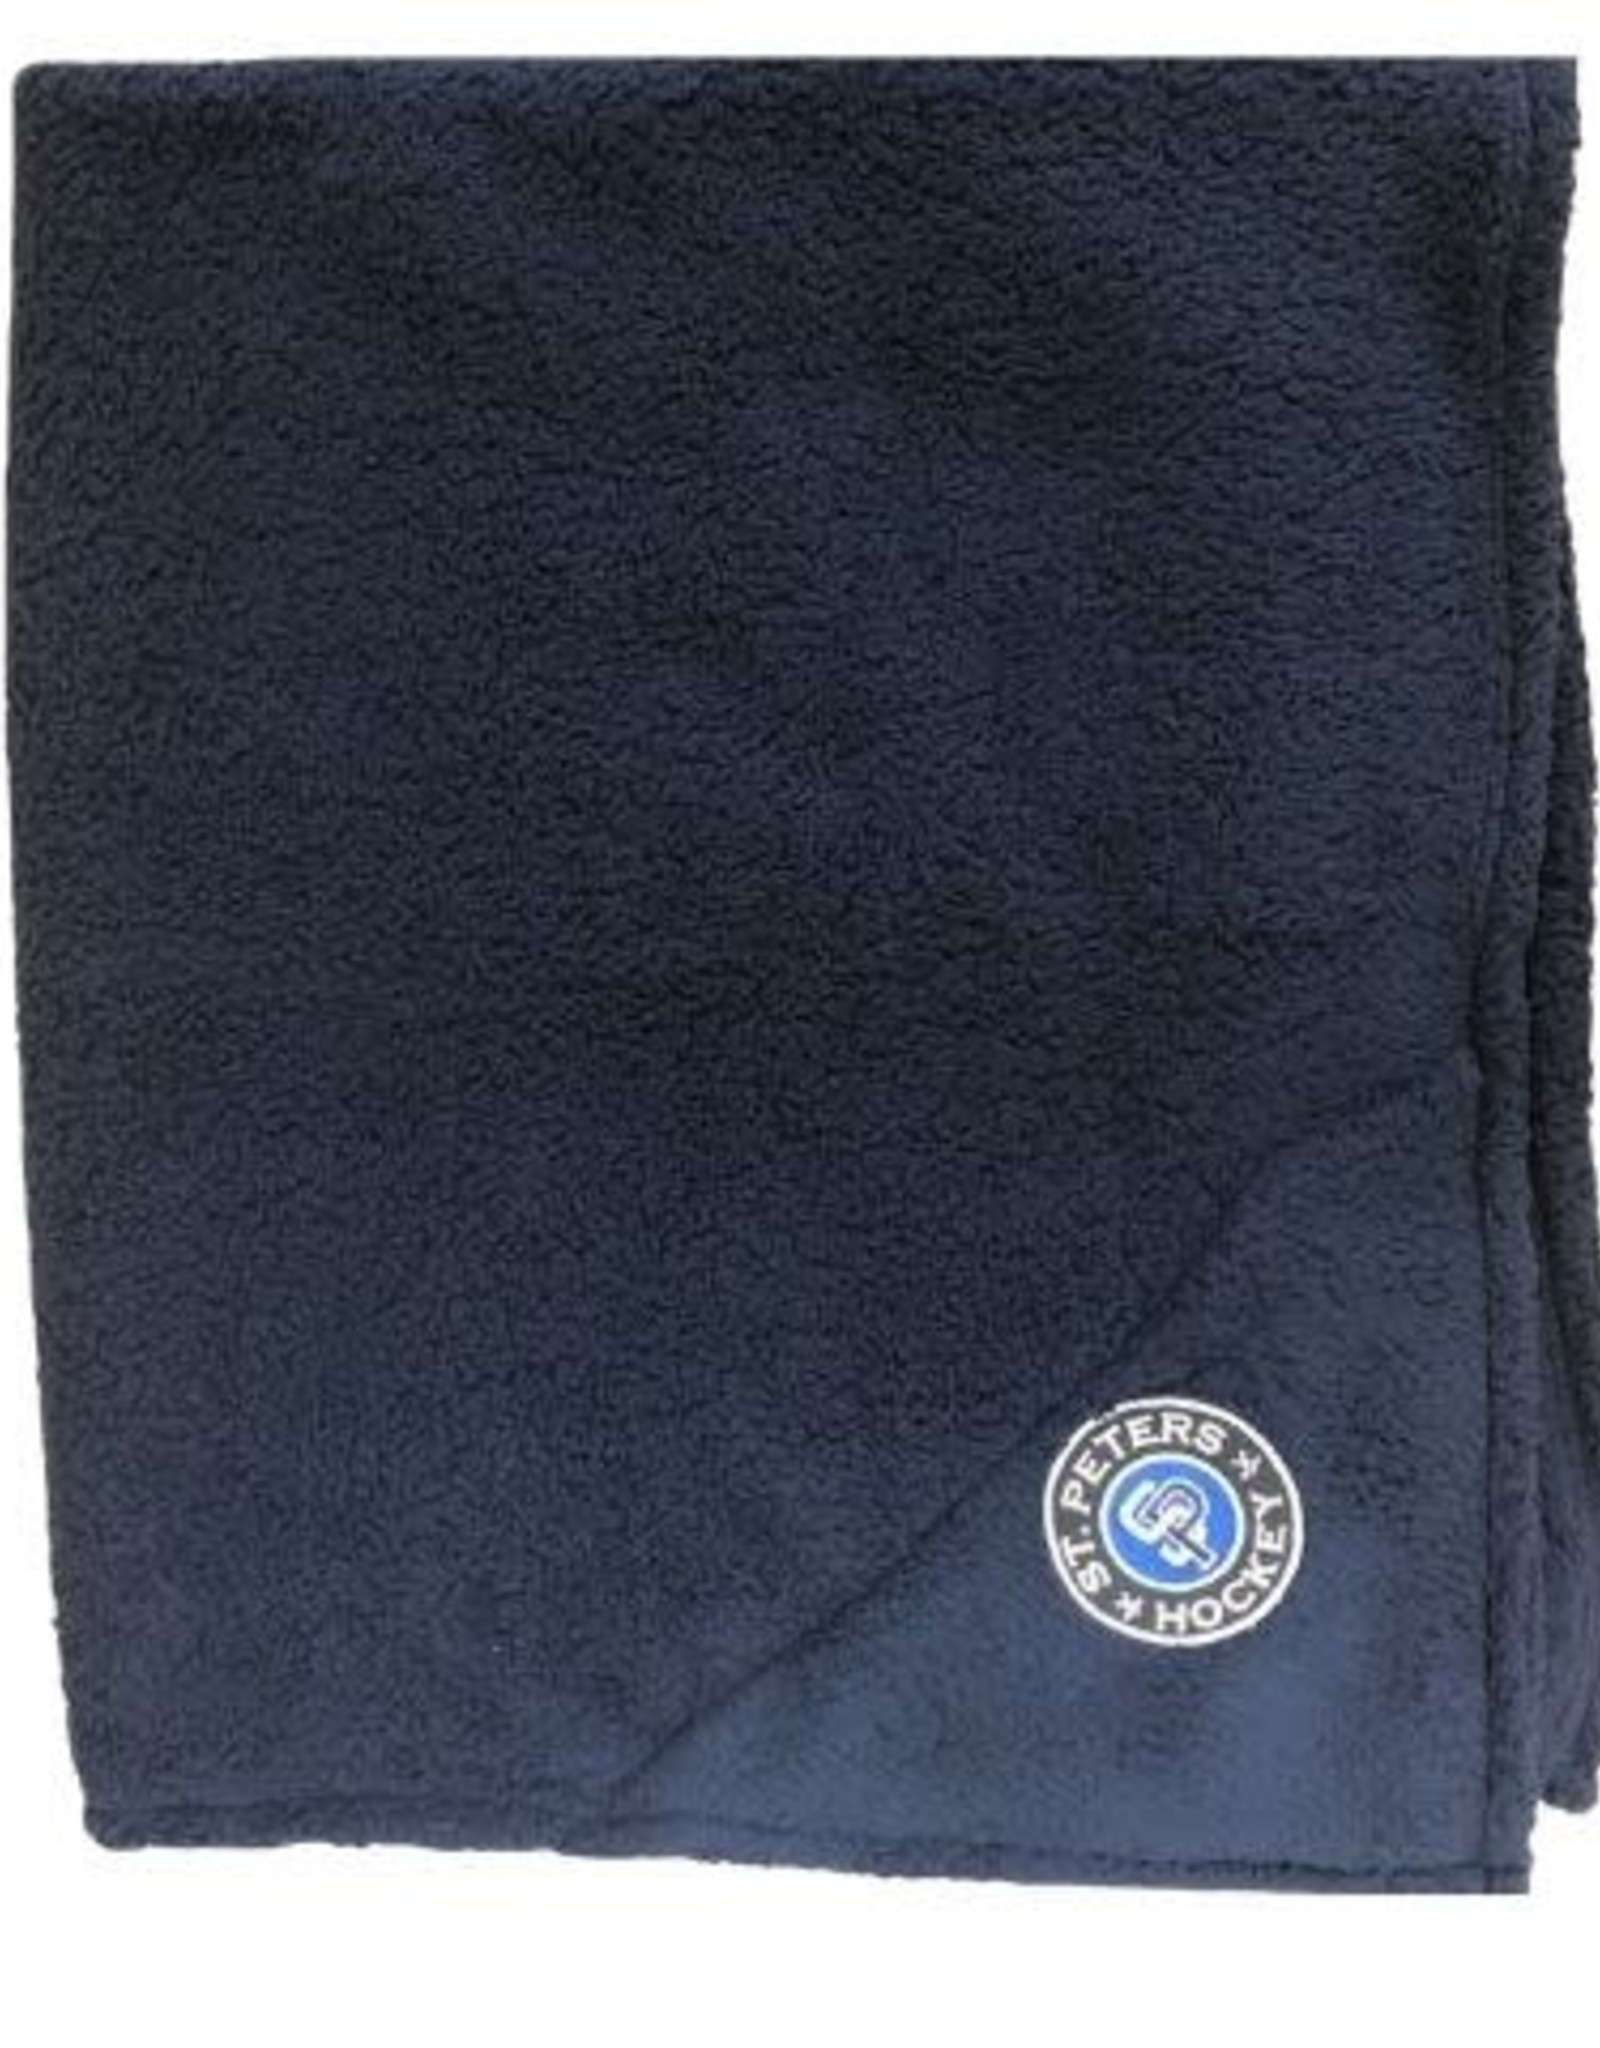 TGP Services STP Sherpa Blanket (Navy)